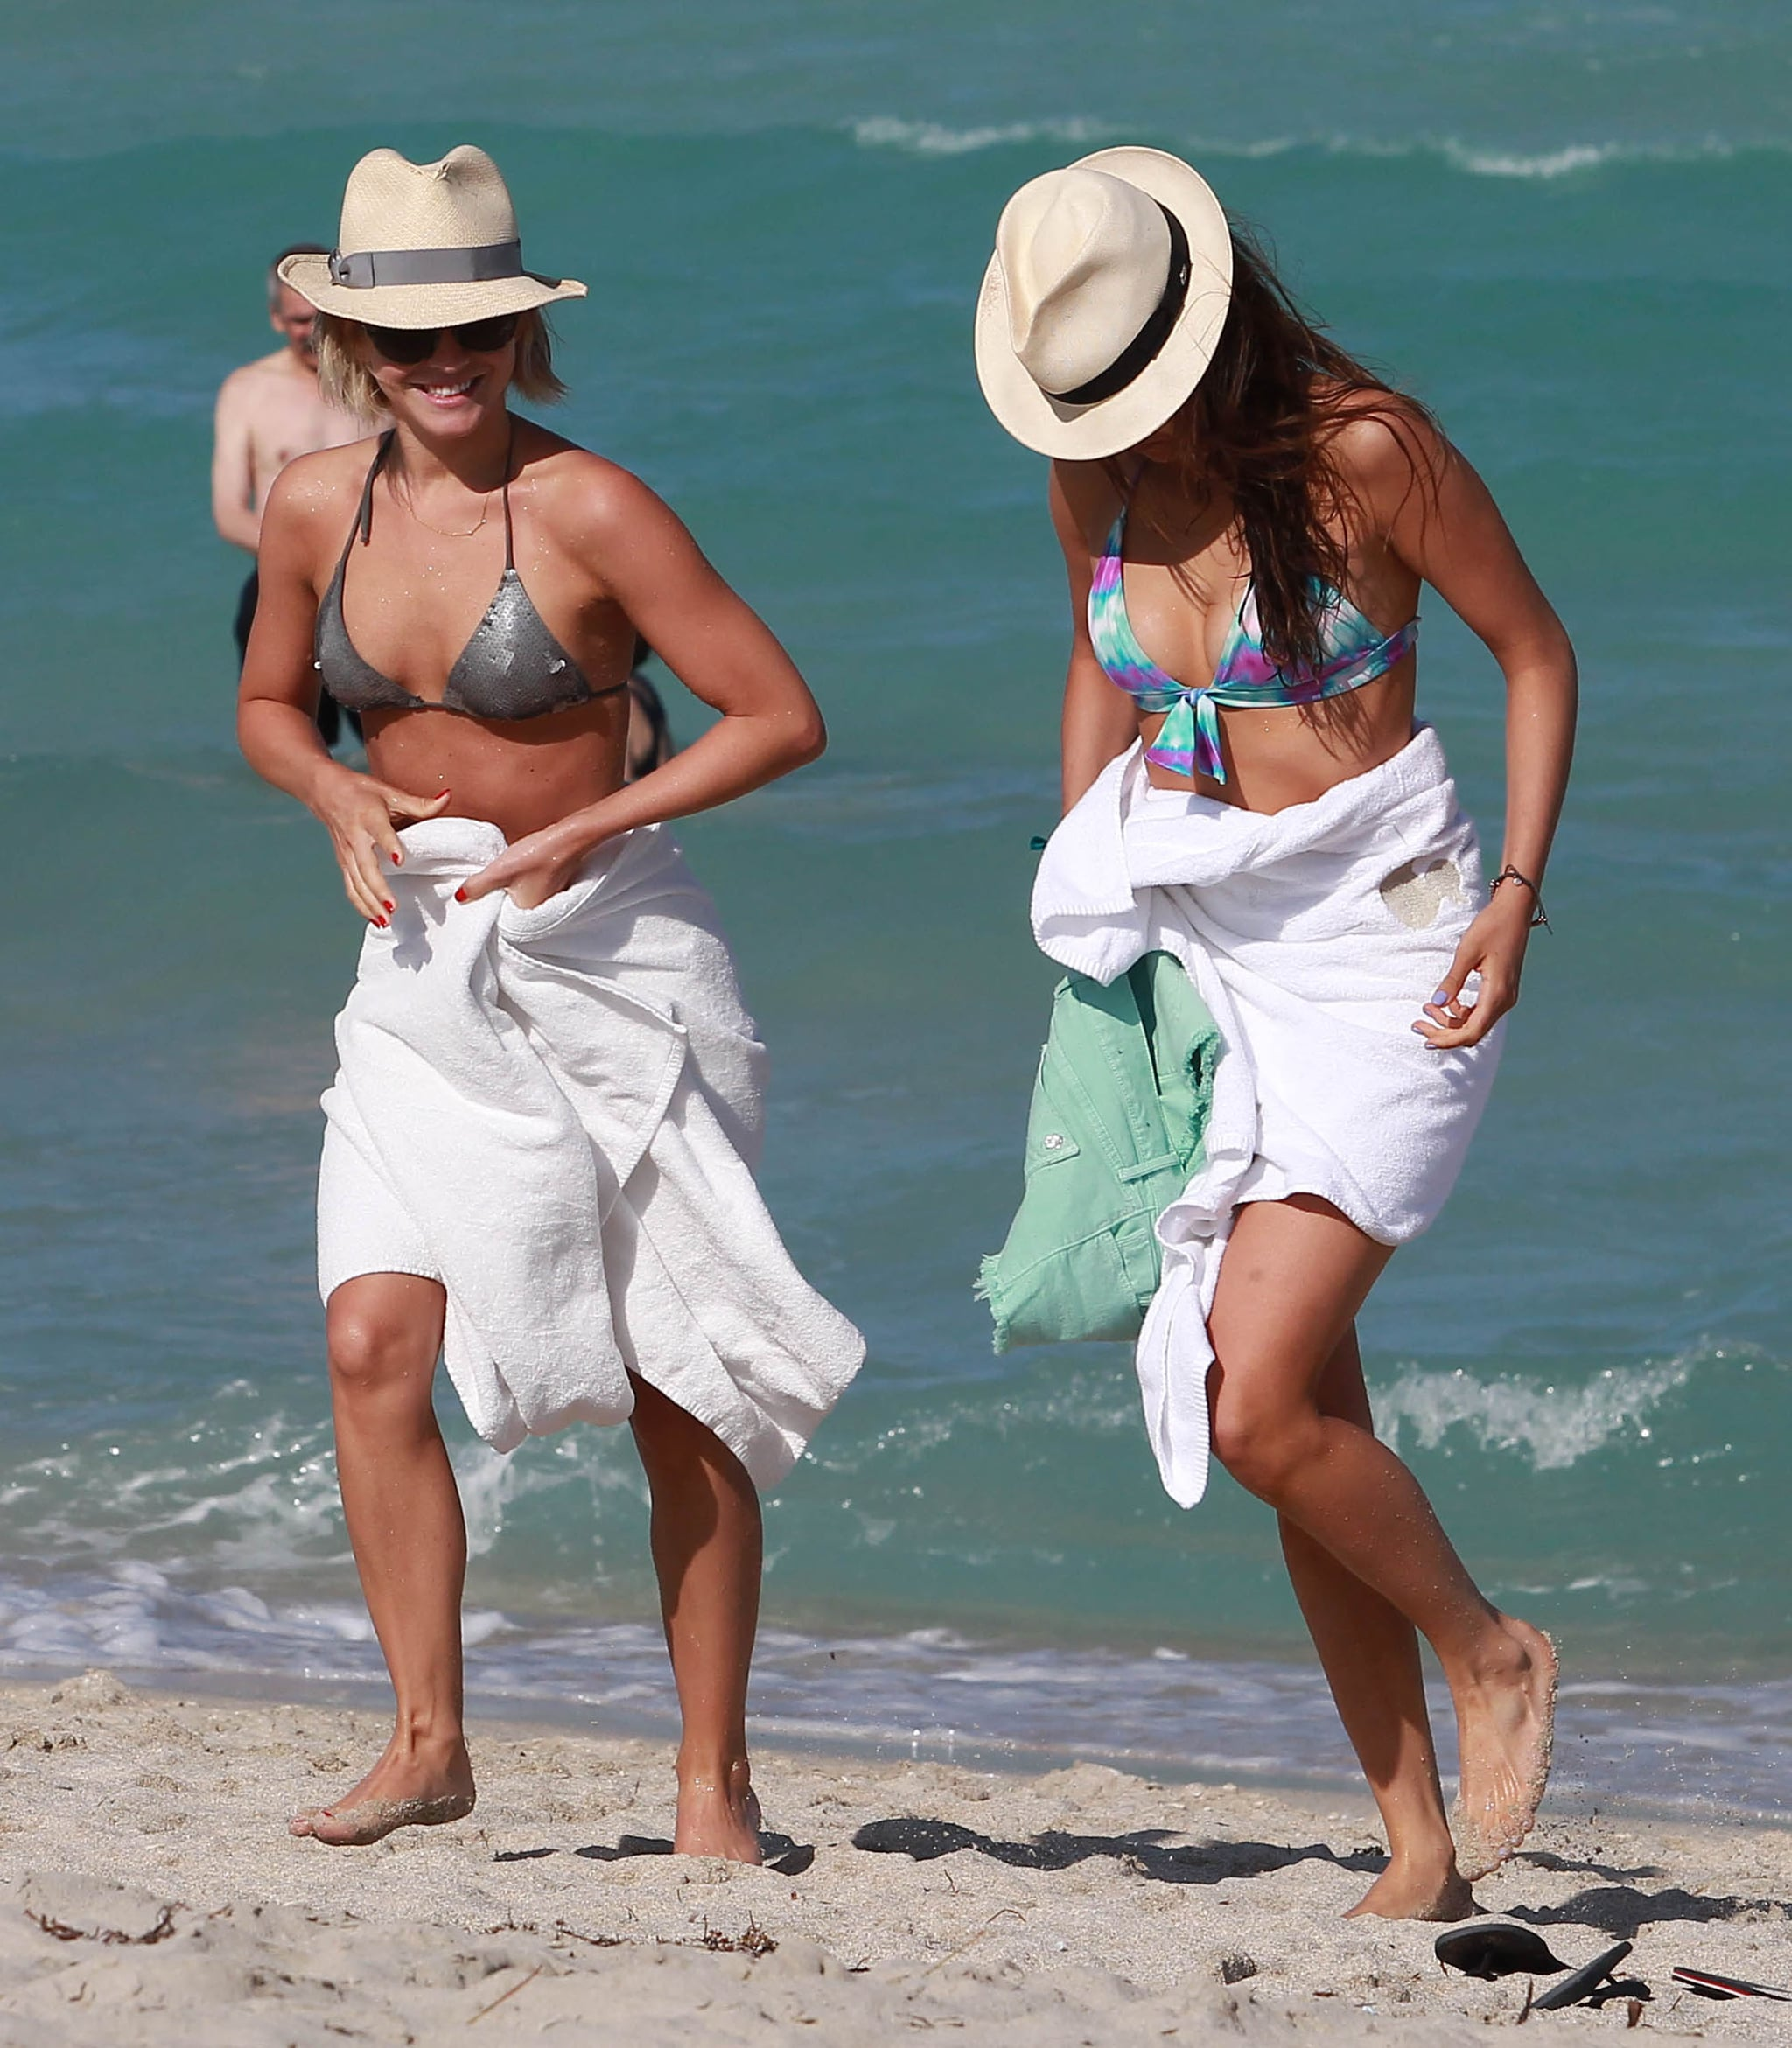 Julianne Hough and Nina Dobrev walked in the sand on the beach in Miami.